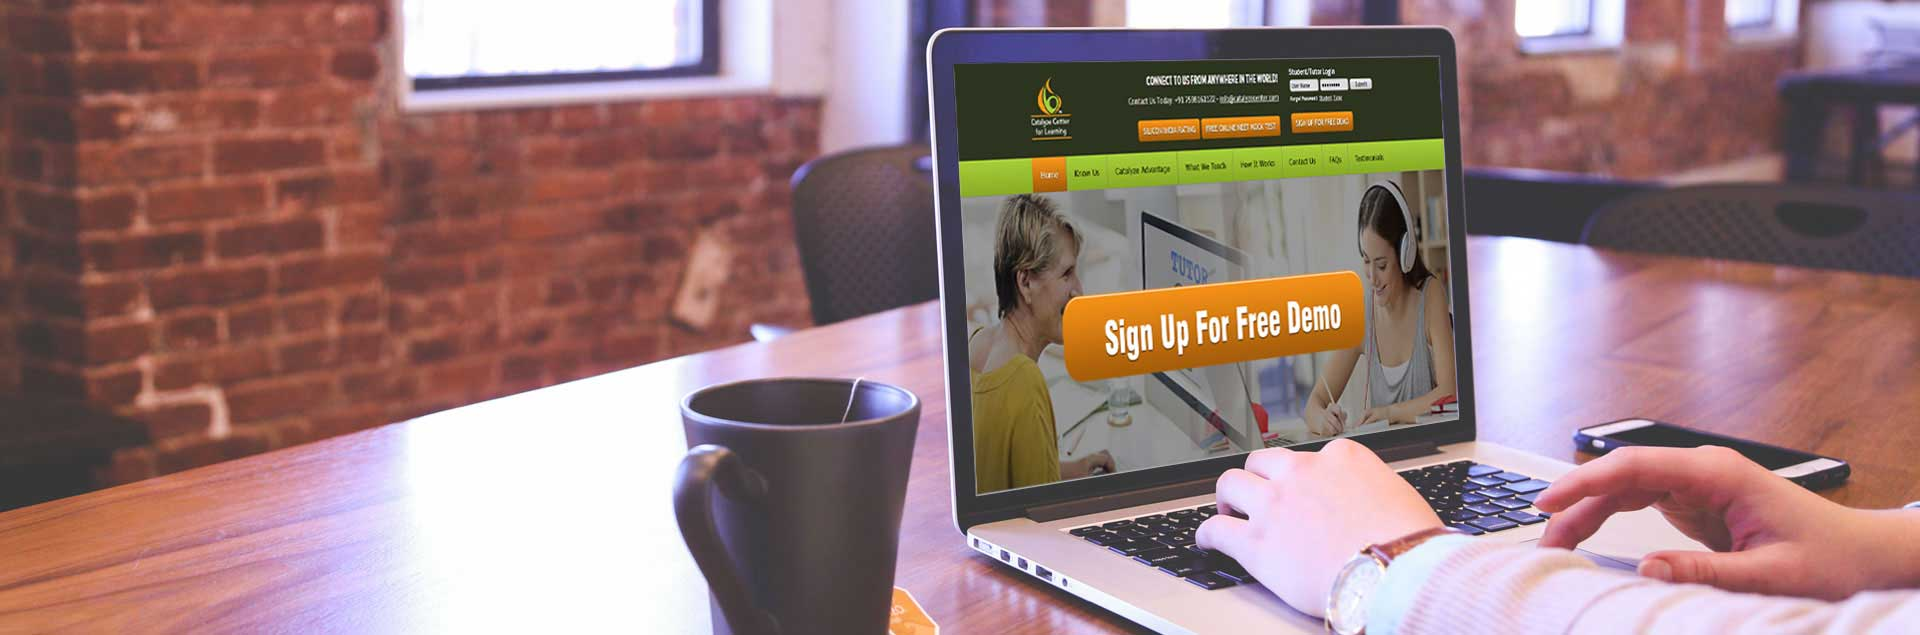 Online Tutors - Online Tuitions for K-12 CBSE, ICSE and IGCSE